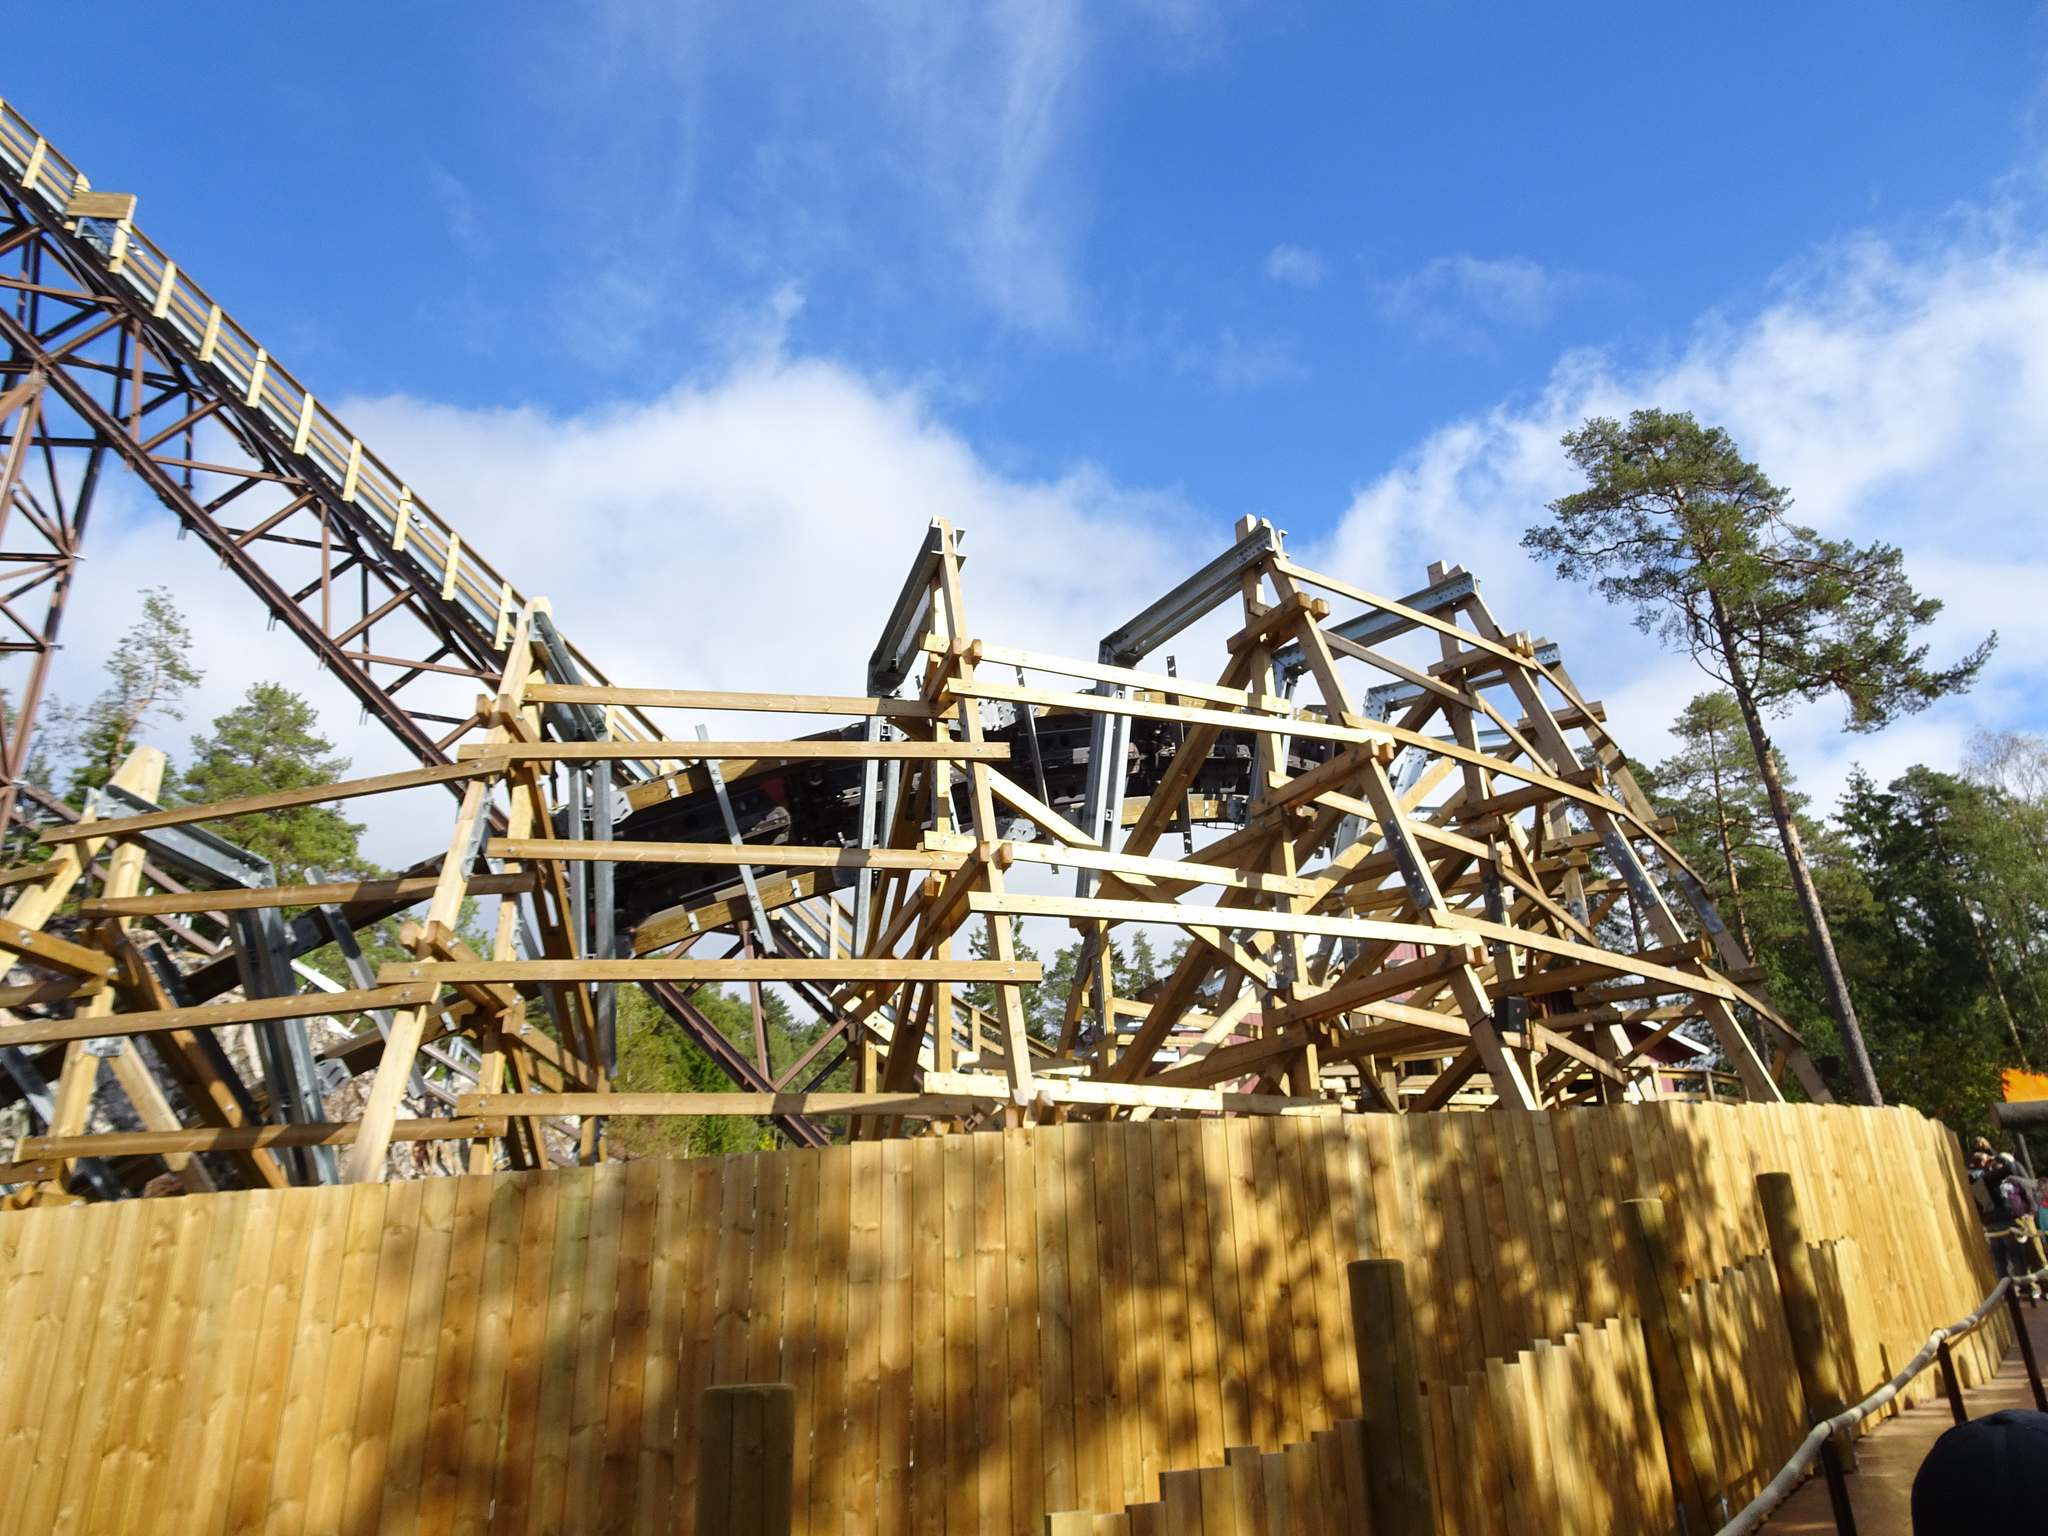 wildfire5 Wildfire   Fastest Wooden Coaster in Europe